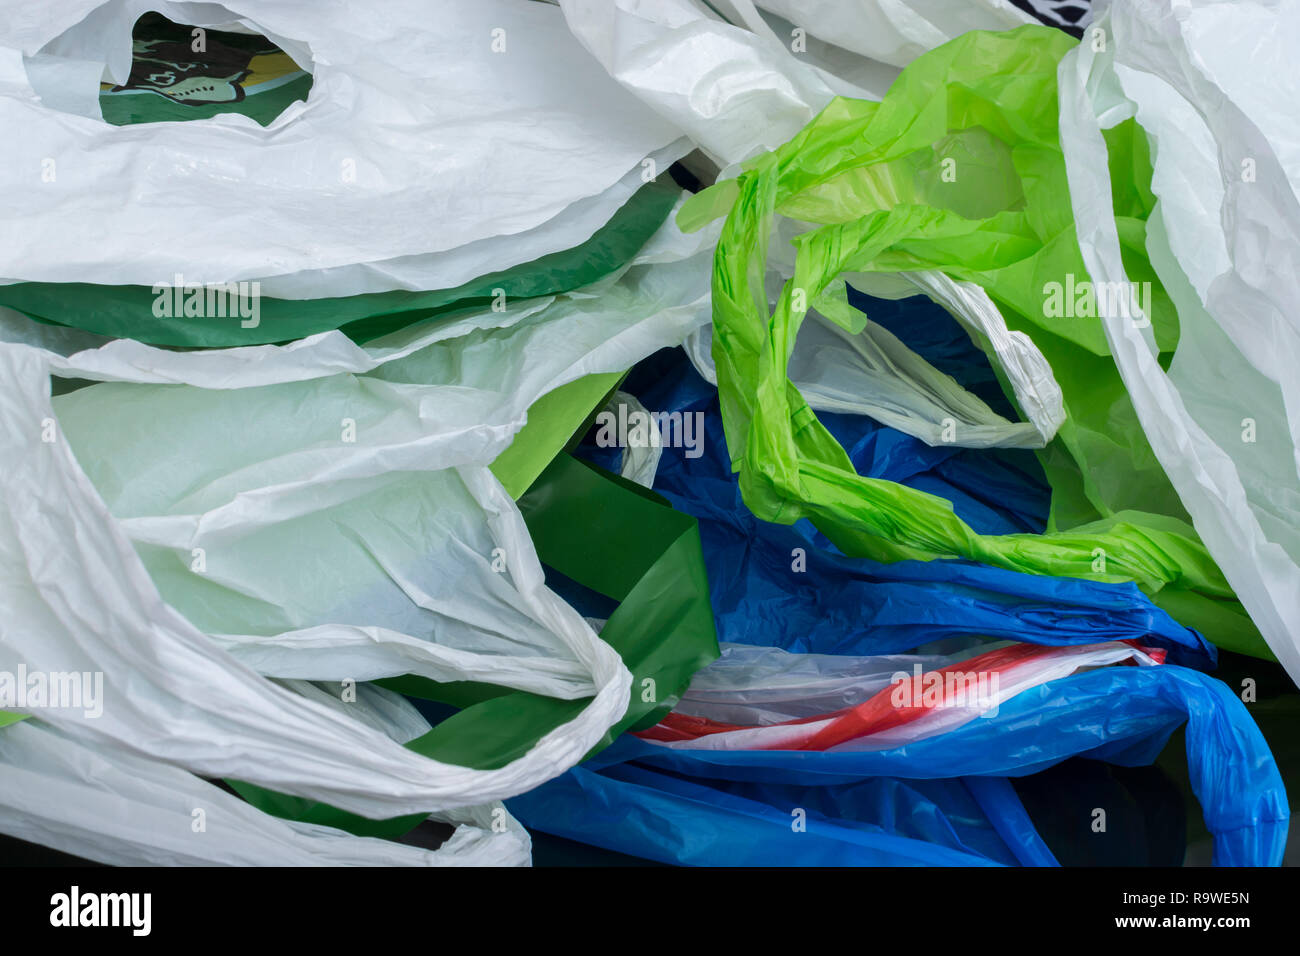 Multiple plastic shopping bags / carrier bags. Metaphor plastic bag tax, bag charge, war on plastic, plastic pollution UK. RM as identifiable colours. - Stock Image